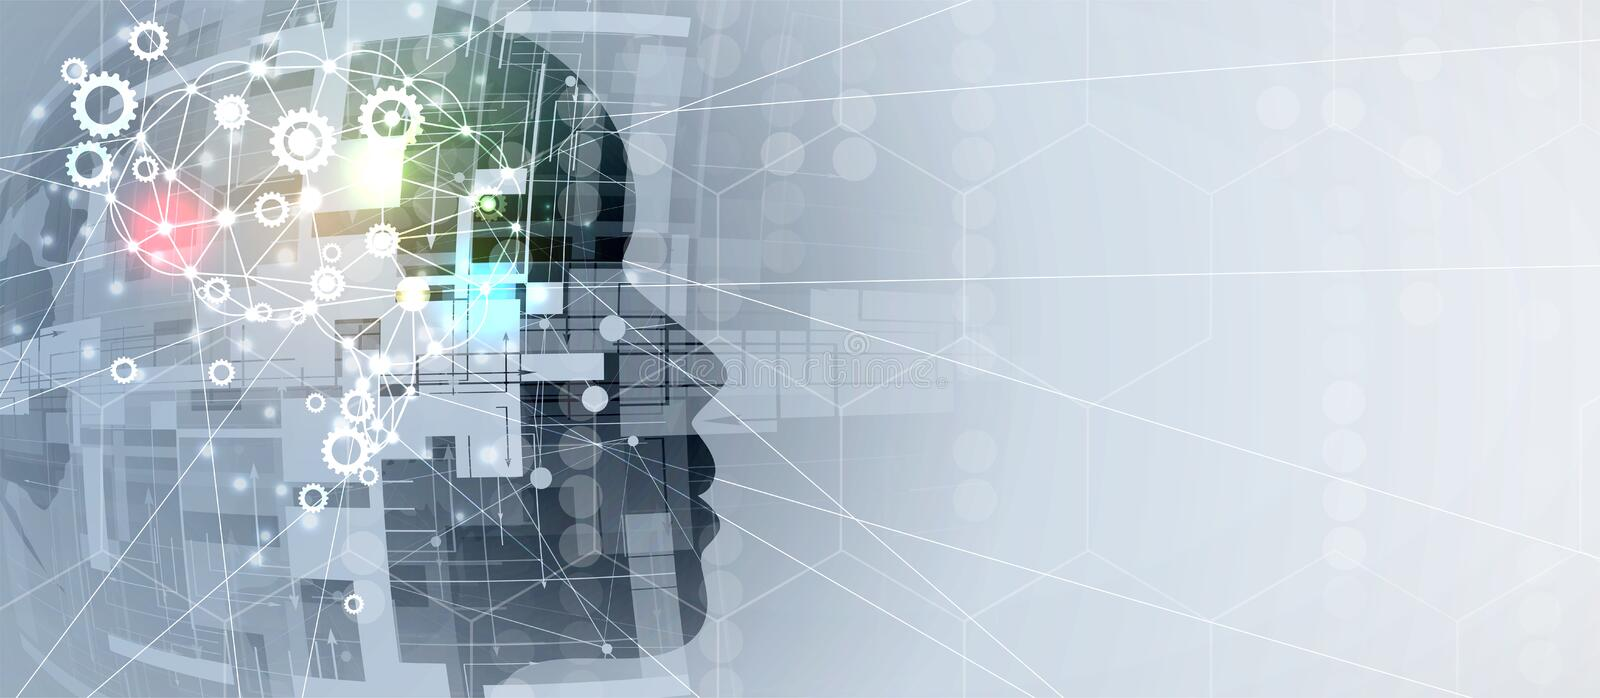 Artificial intelligence. Technology gear system web background. Virtual conc royalty free illustration